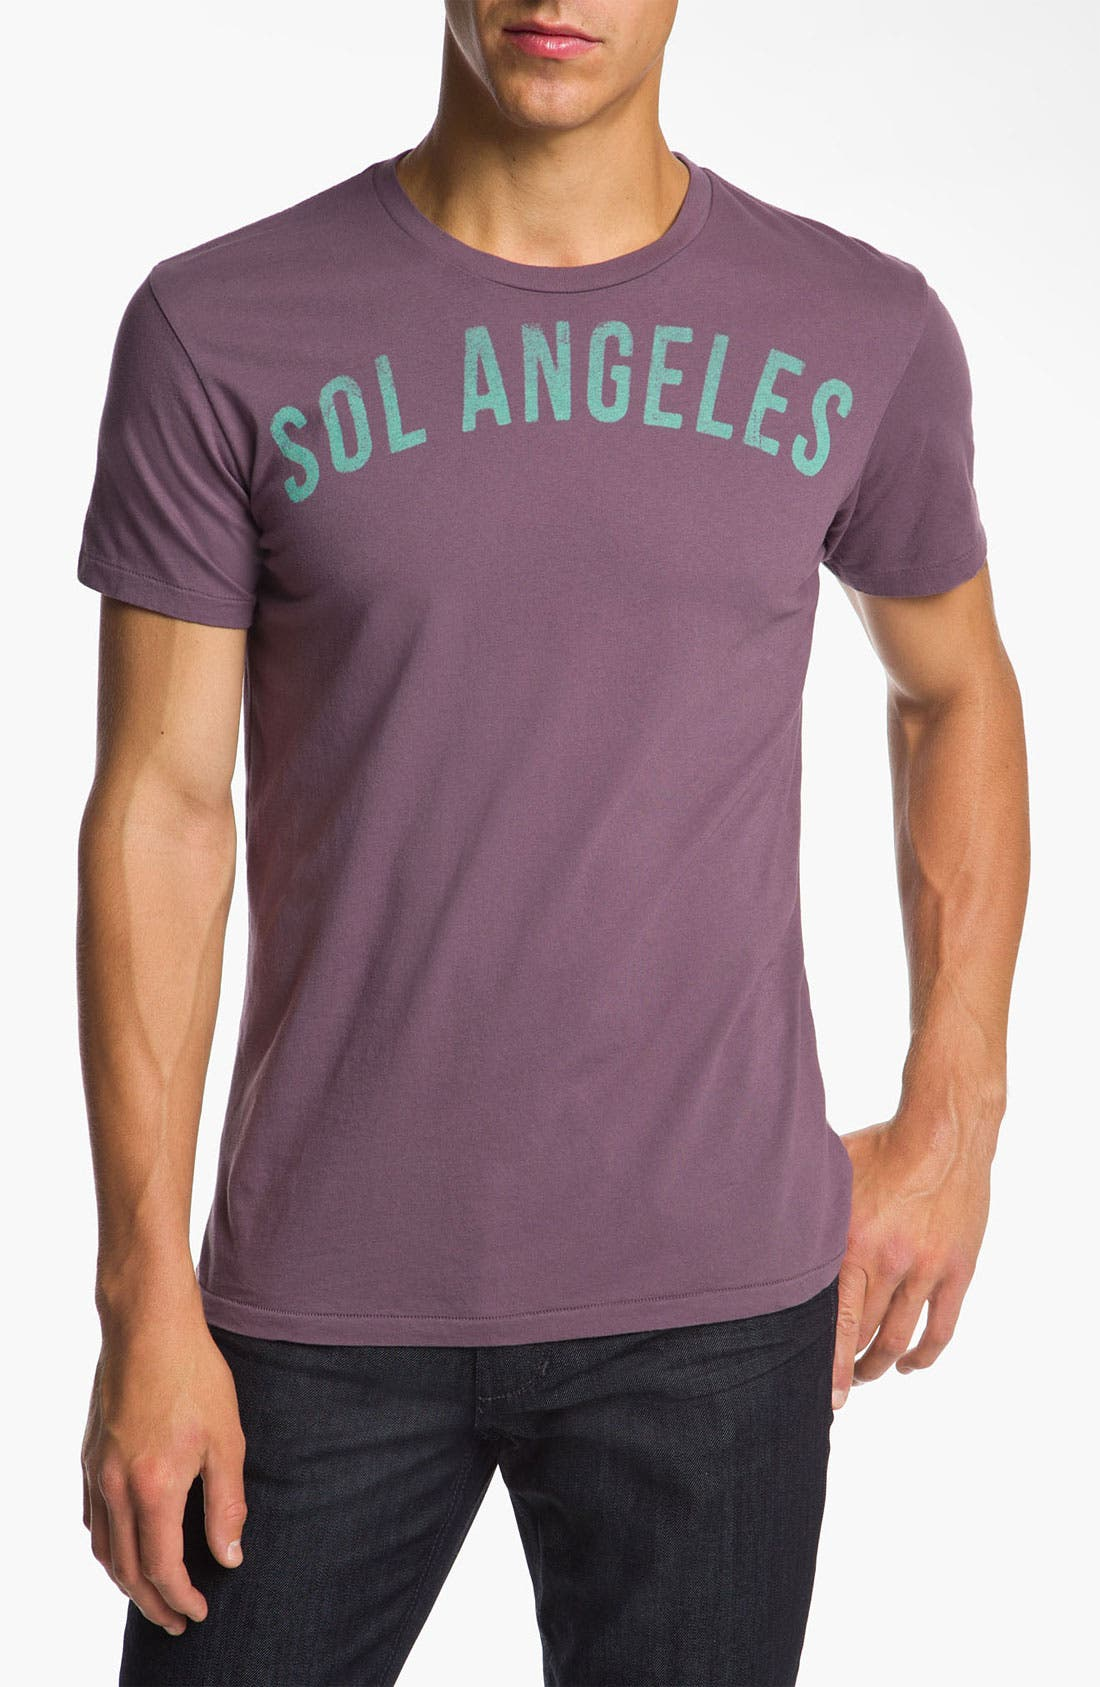 Main Image - Sol Angeles 'Logo' Graphic T-Shirt